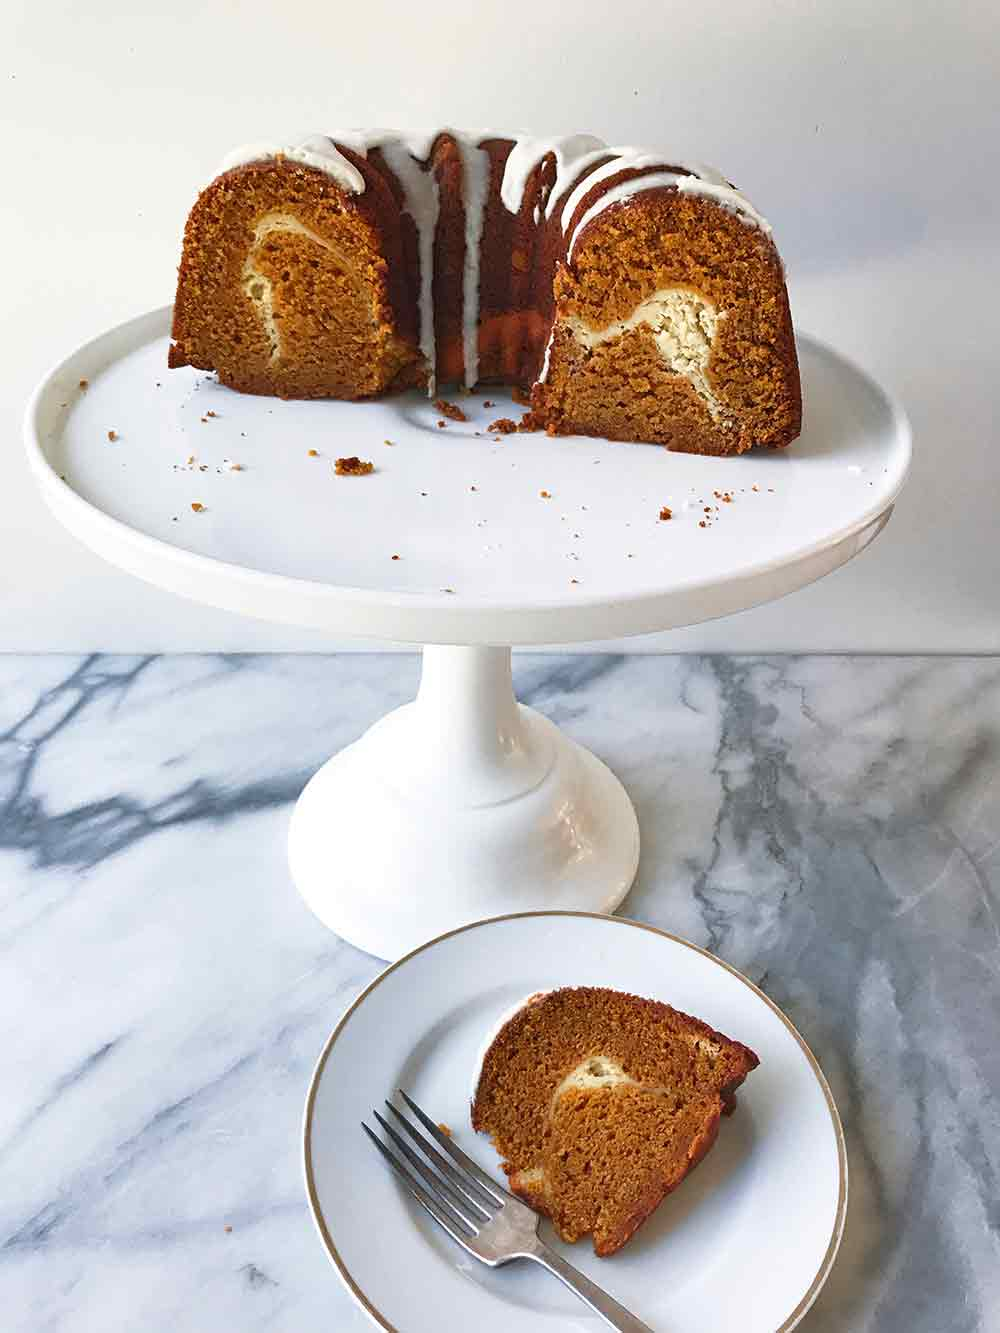 Half of a glazed pumpkin pound cake with a swirl of cream cheese filling inside on a cake stand, a piece on a plate nearby